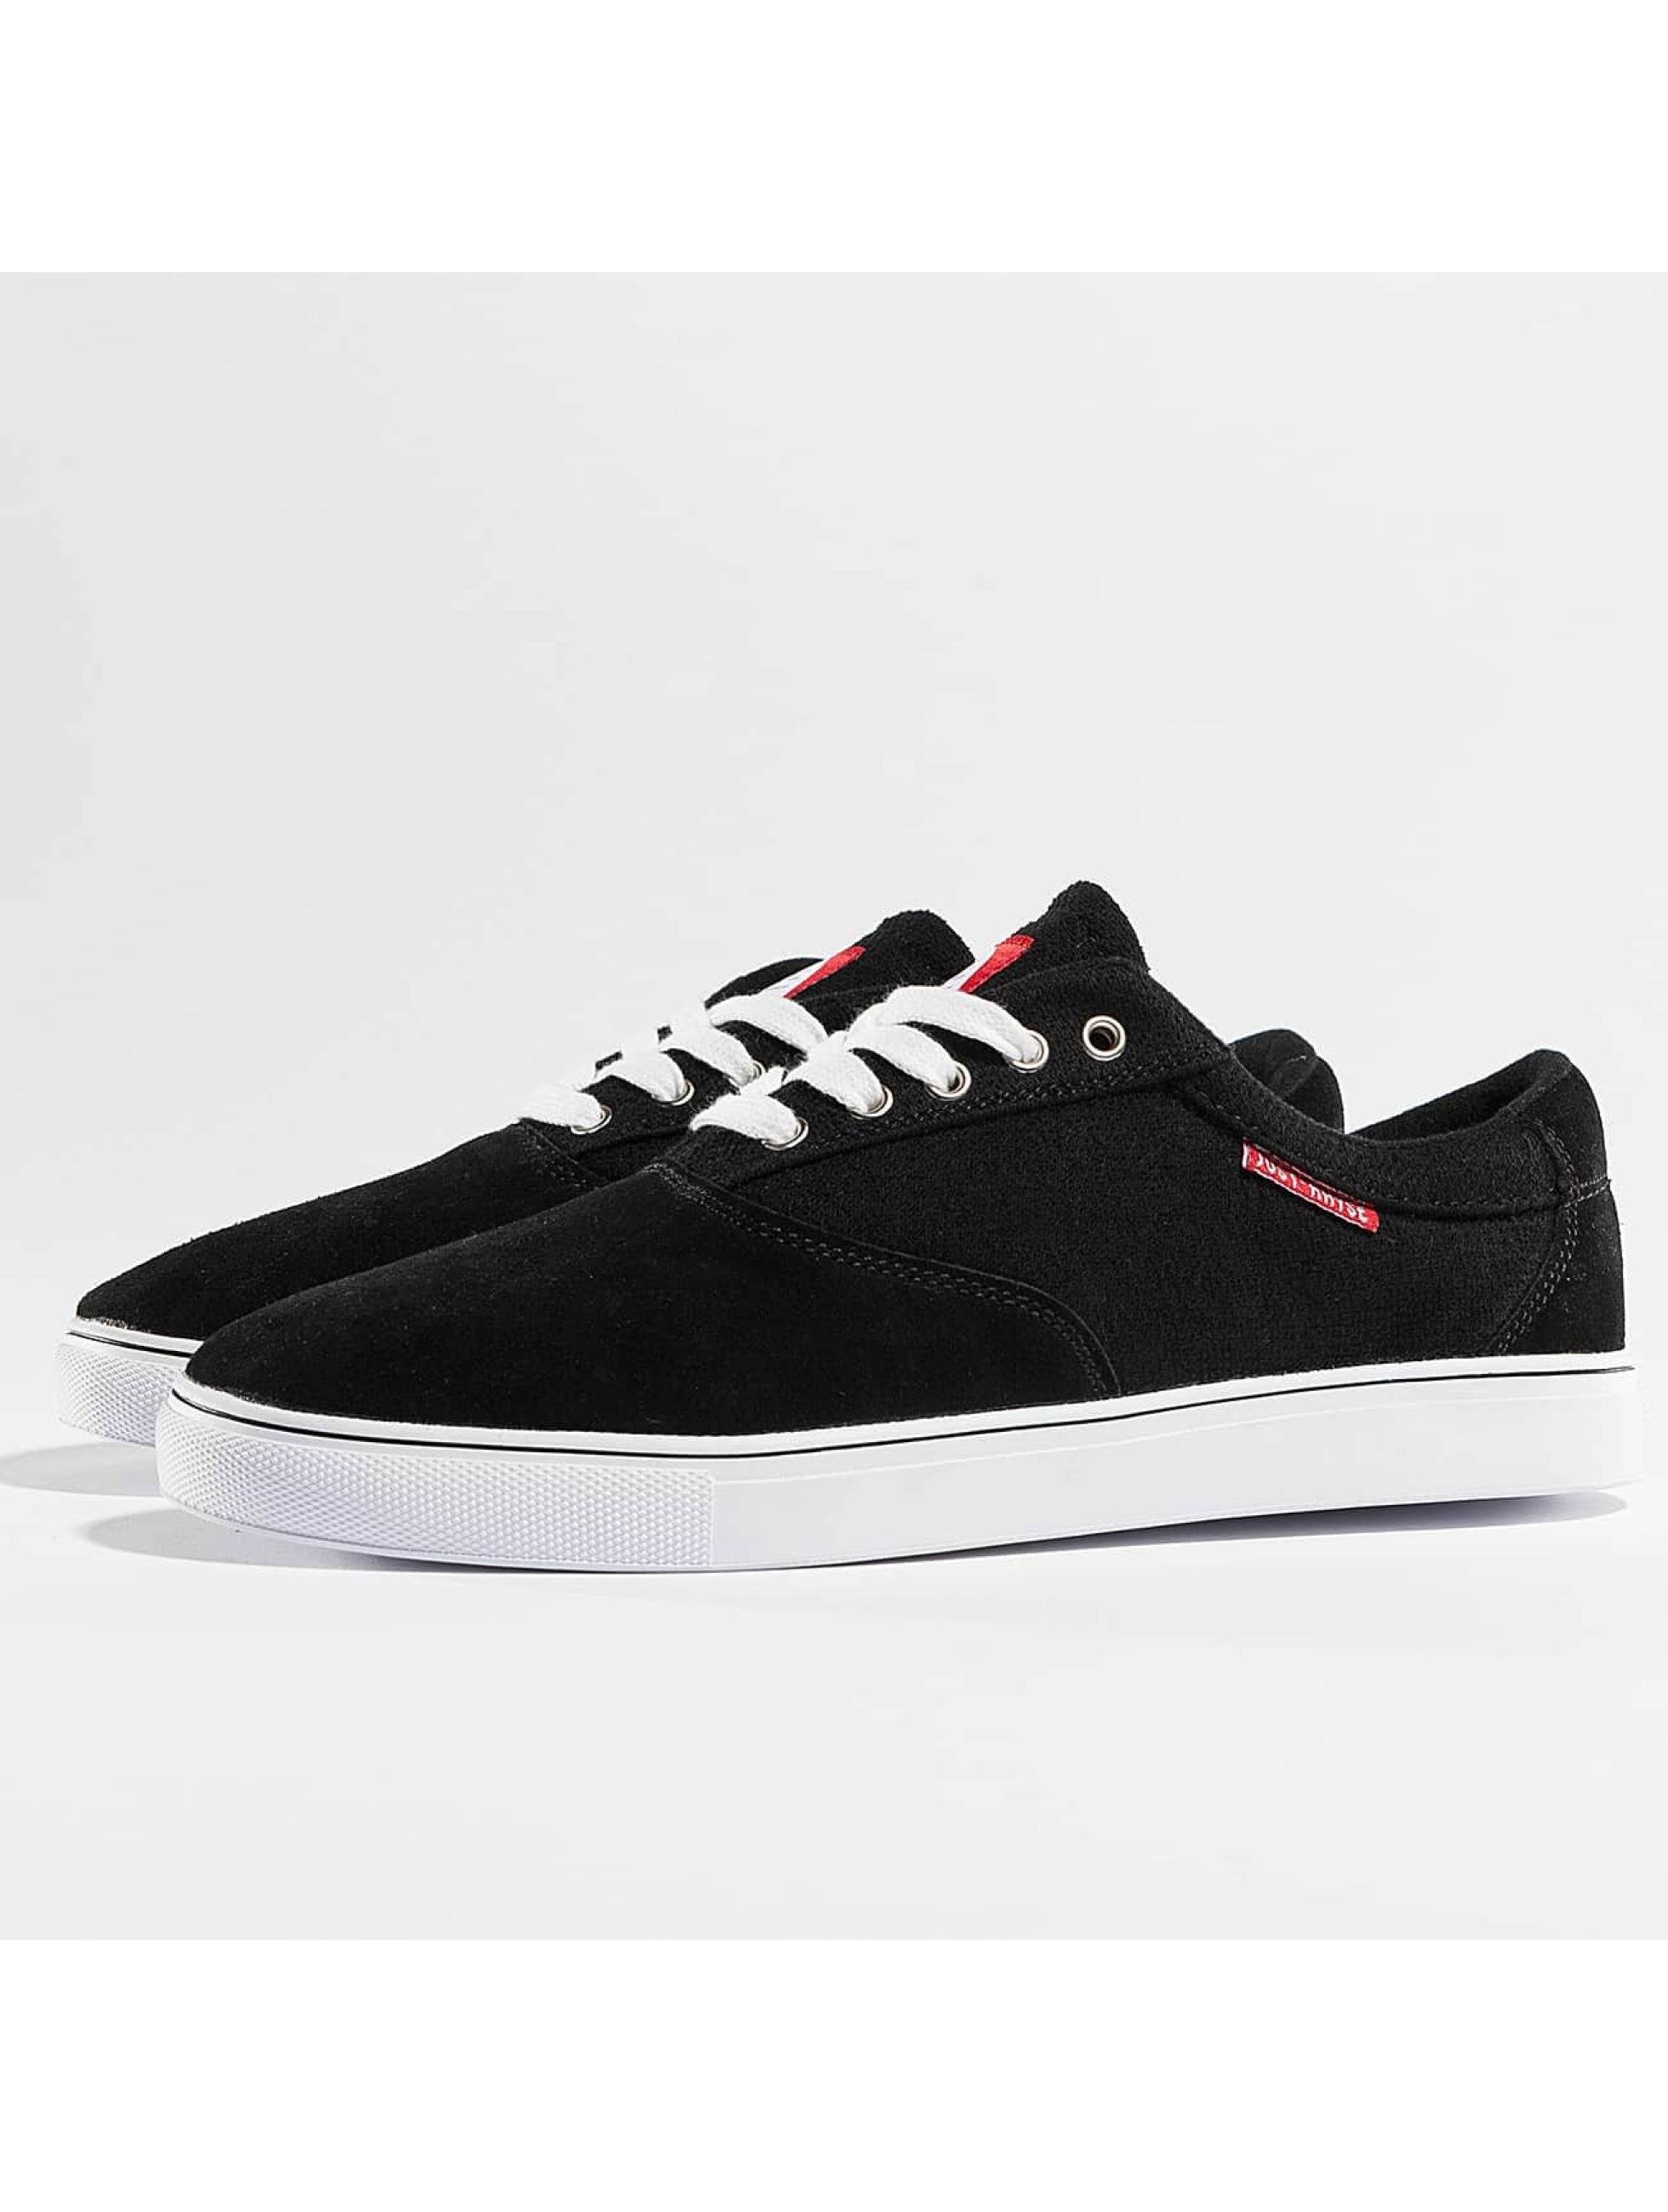 Just Rhyse / Sneakers Ozone in black 42